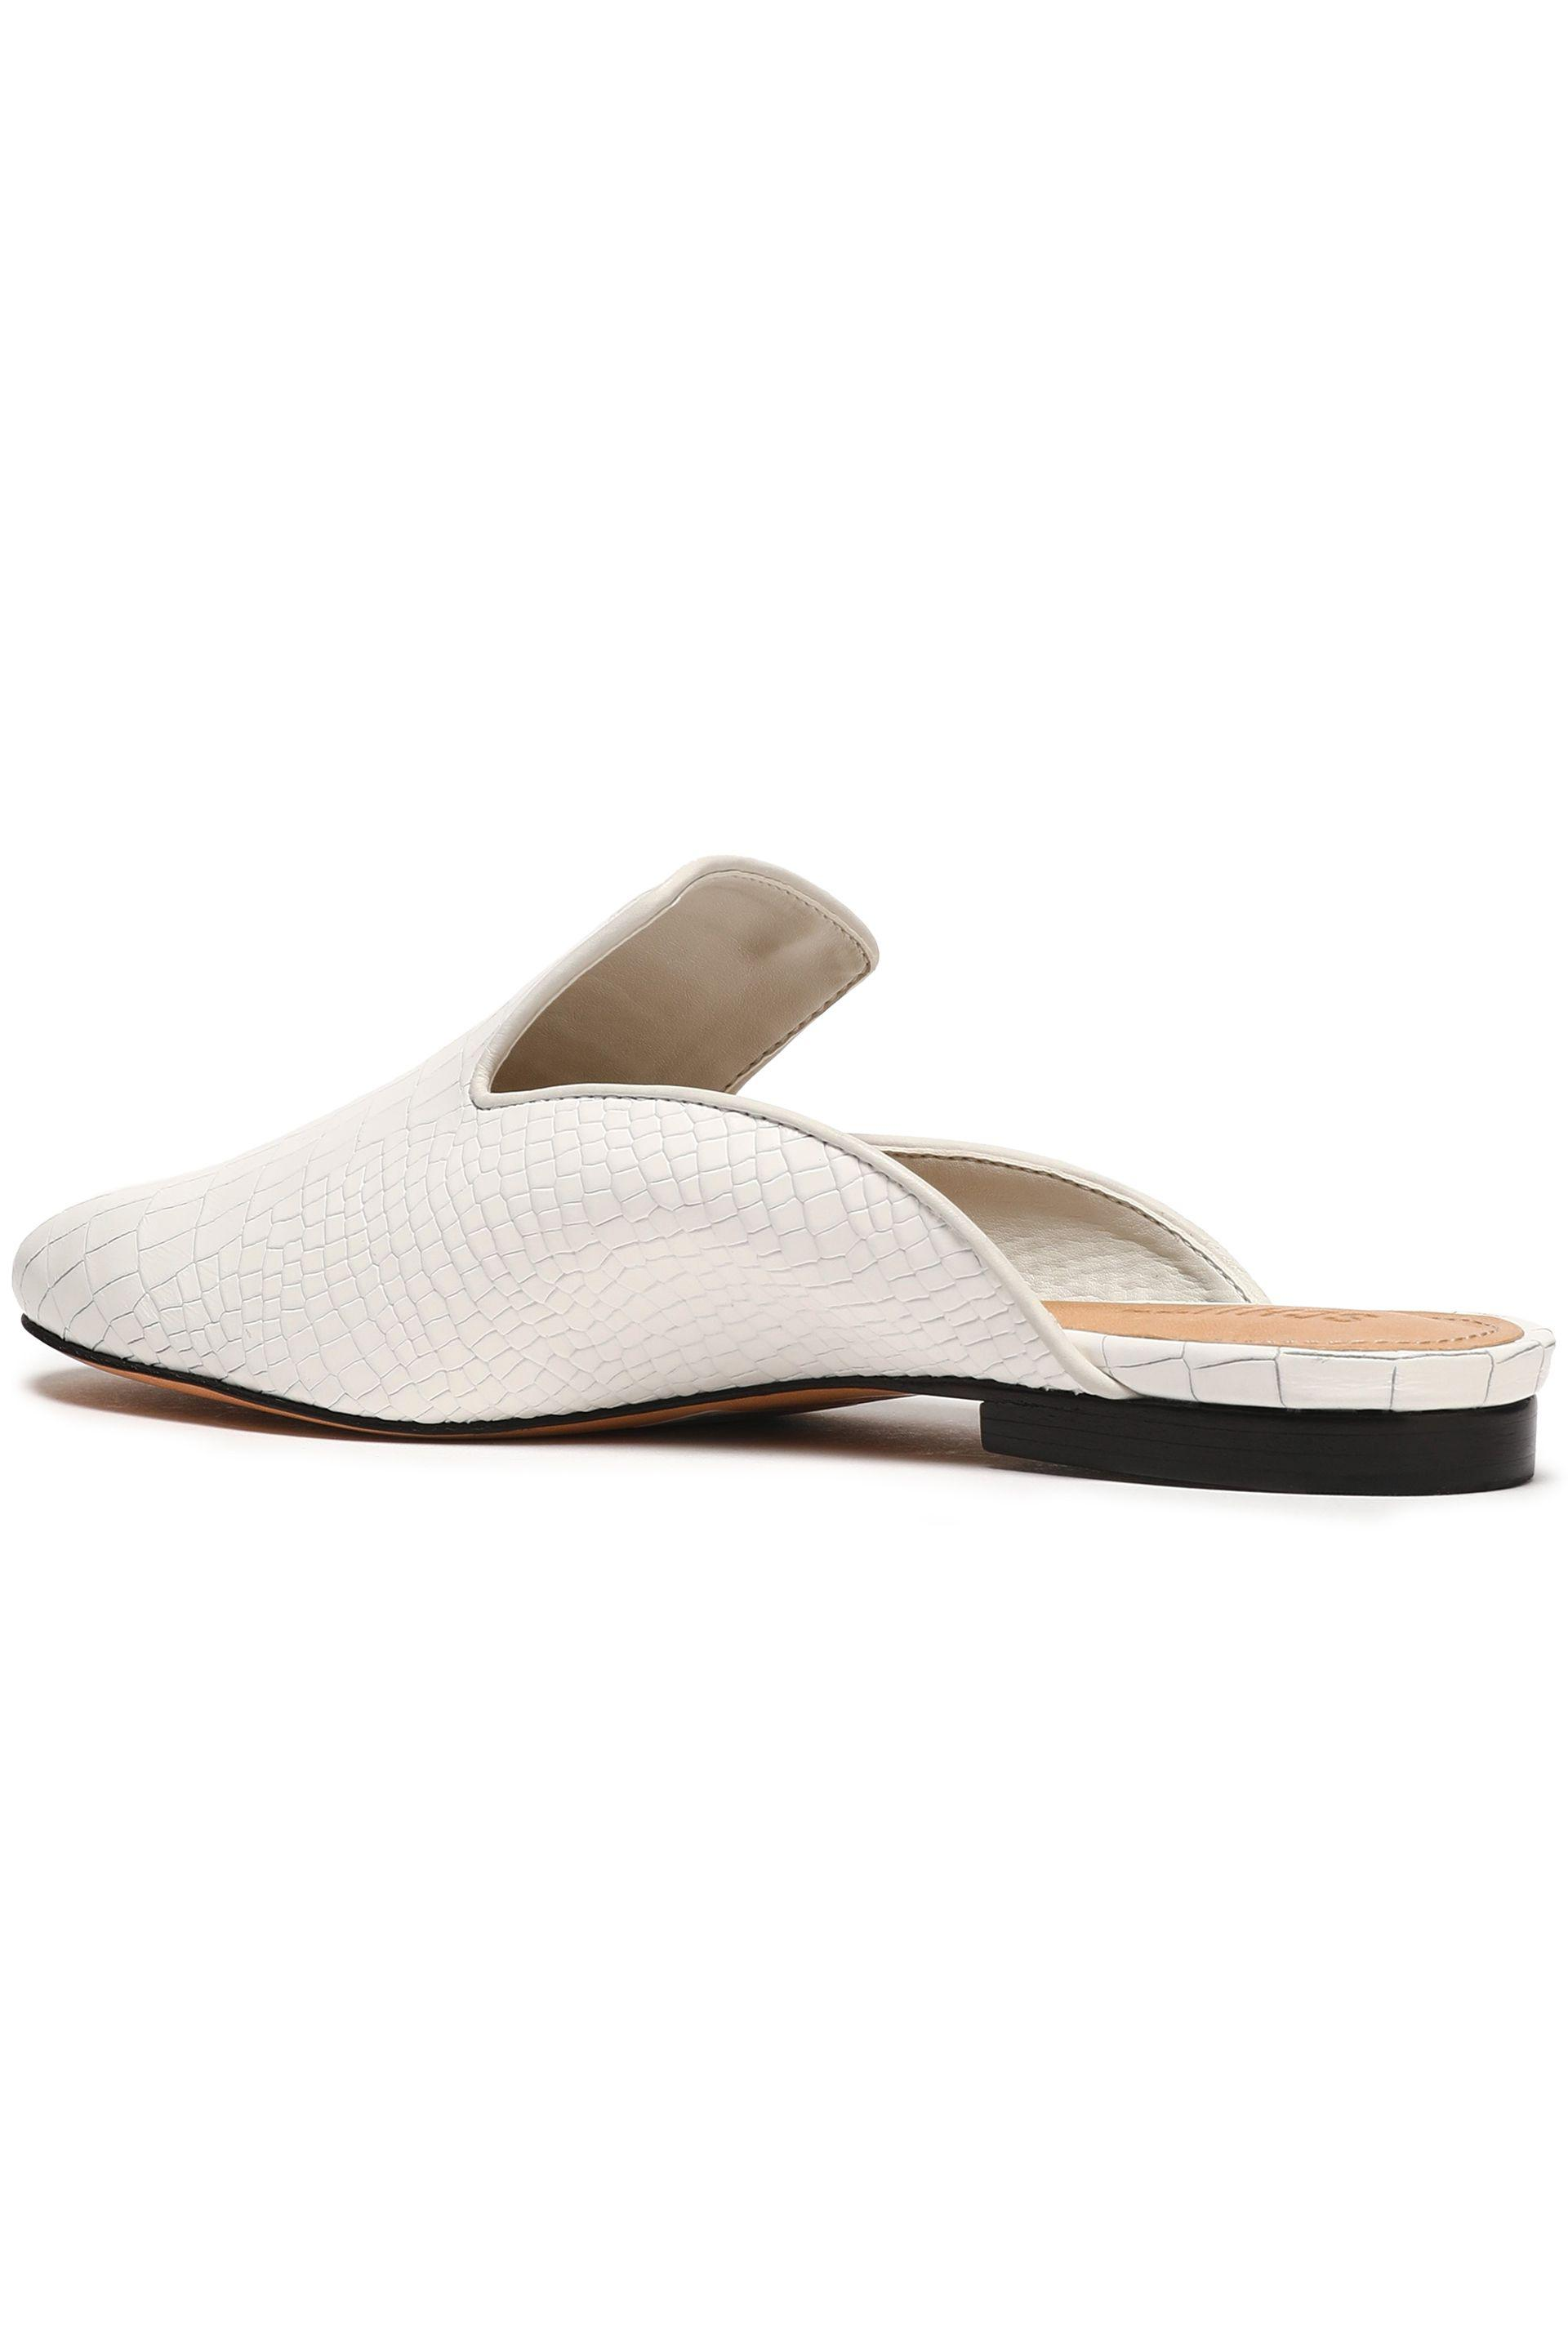 73dfe8eff90967 Lyst - Schutz Croc-effect Leather Slippers in White